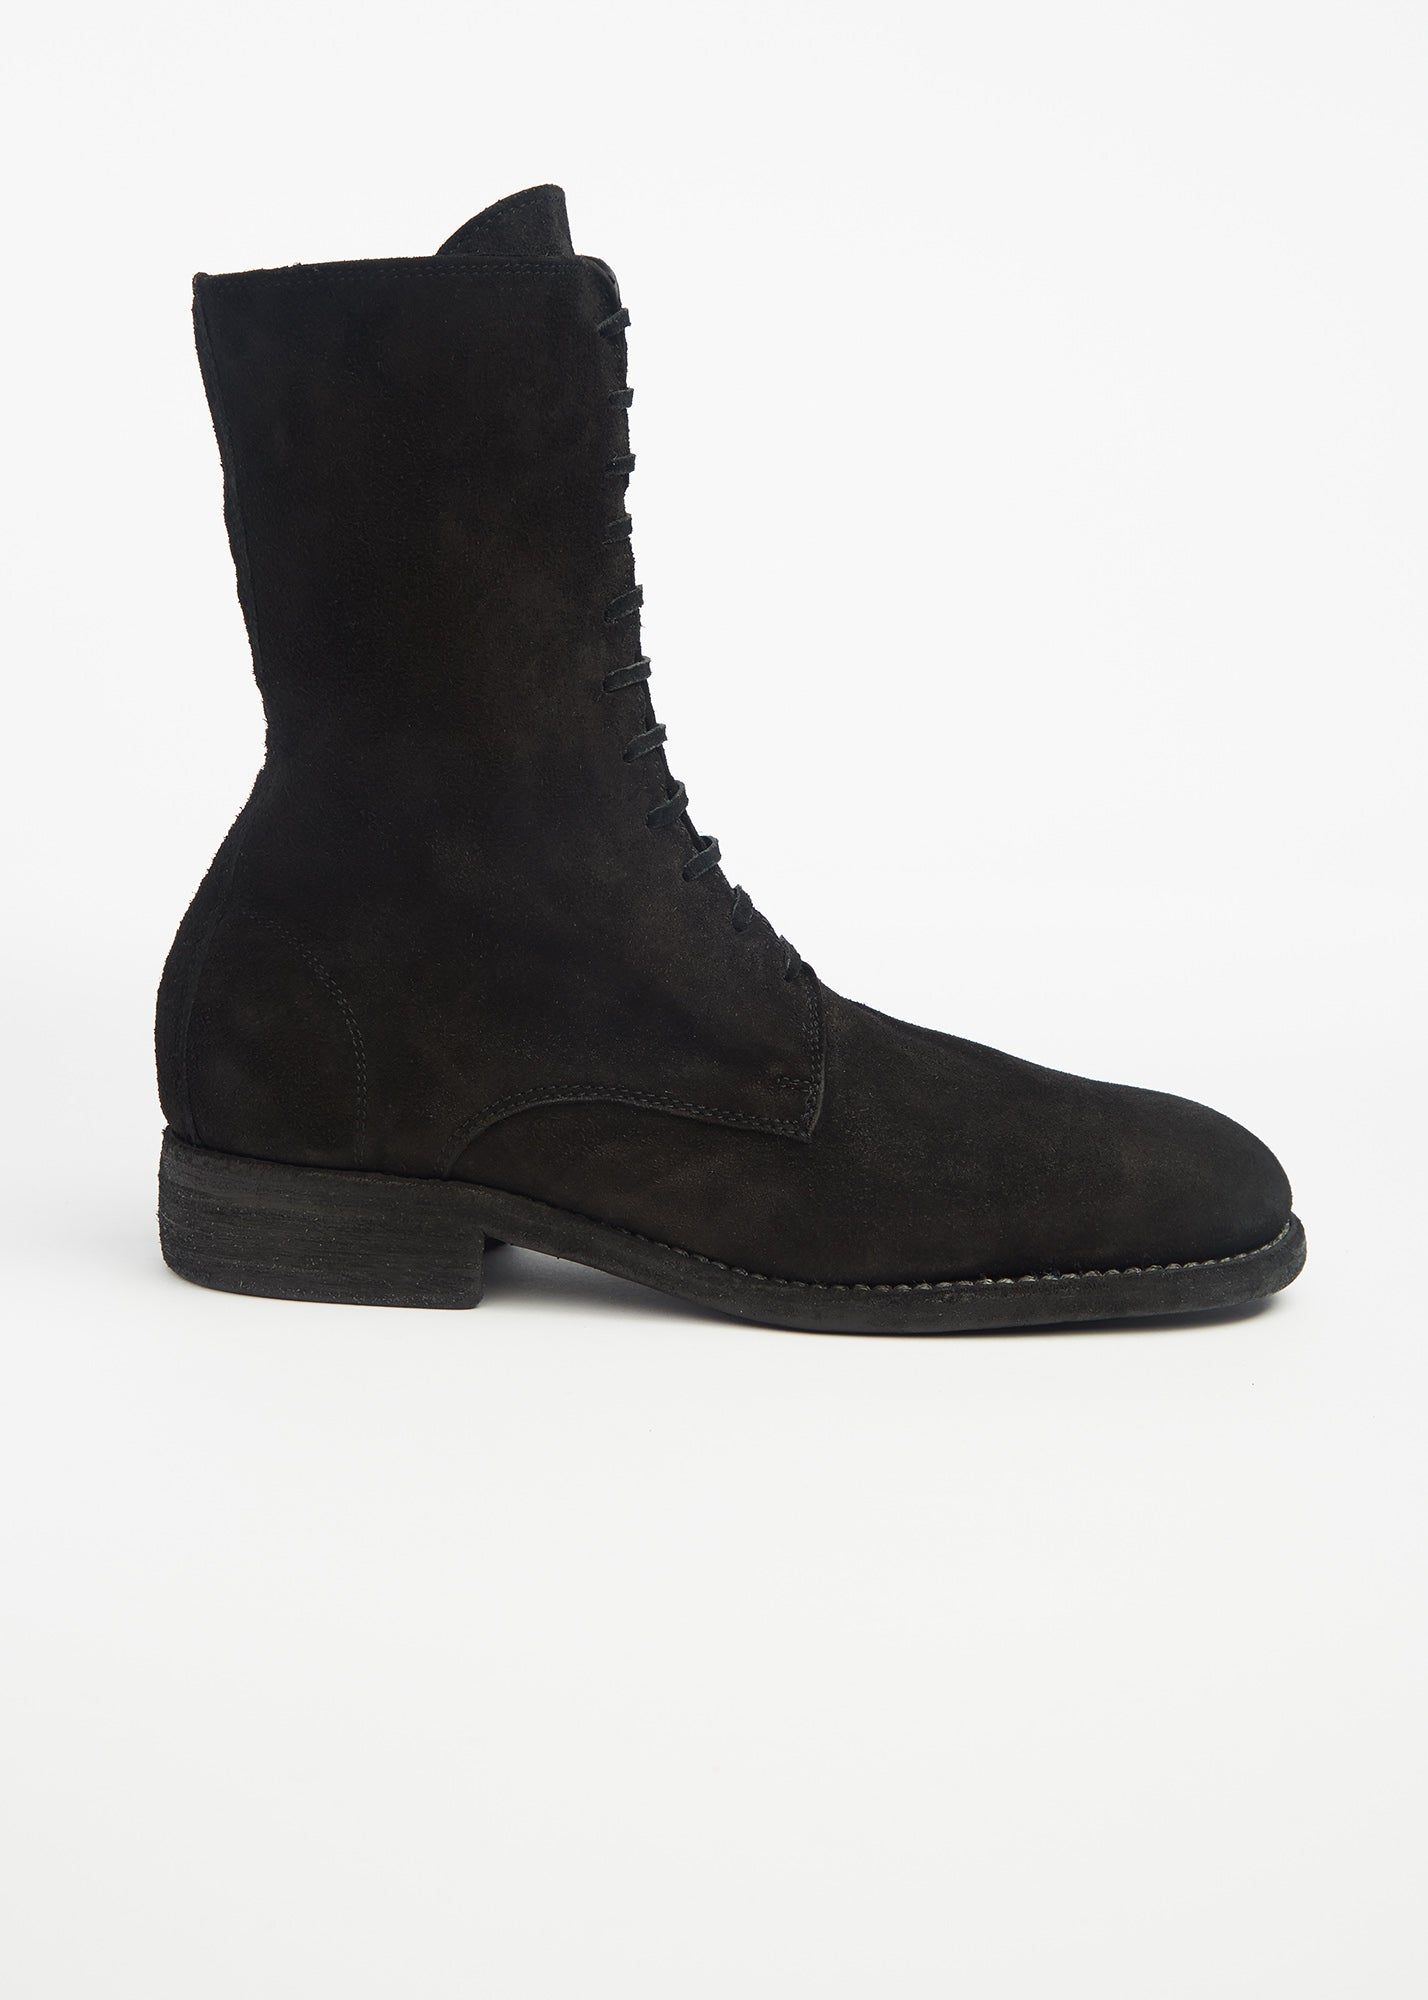 Lace Up Boots Black Suede